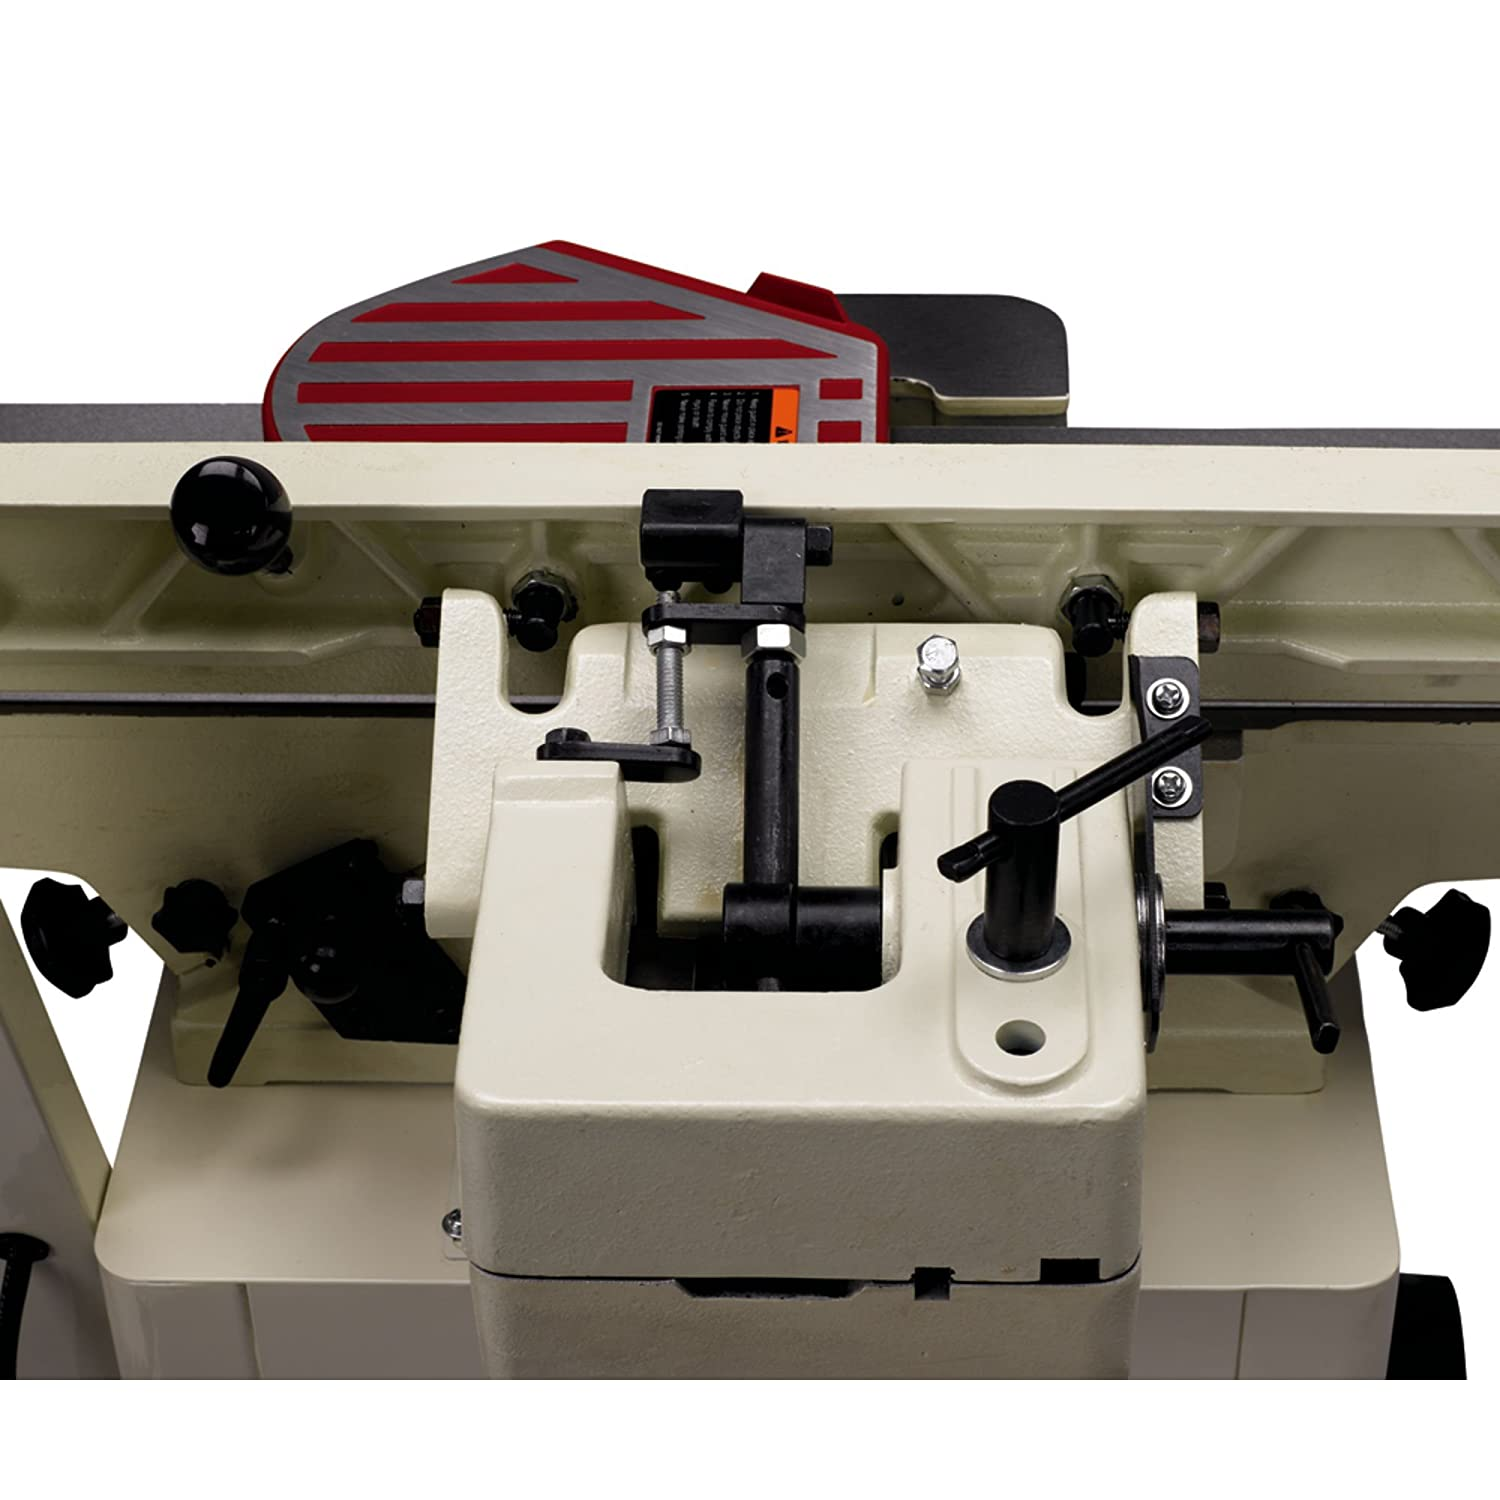 JET - JJ-6HHDX 6-Inch Long Bed Helical Head Jointer - Power Jointers -  Amazon.com